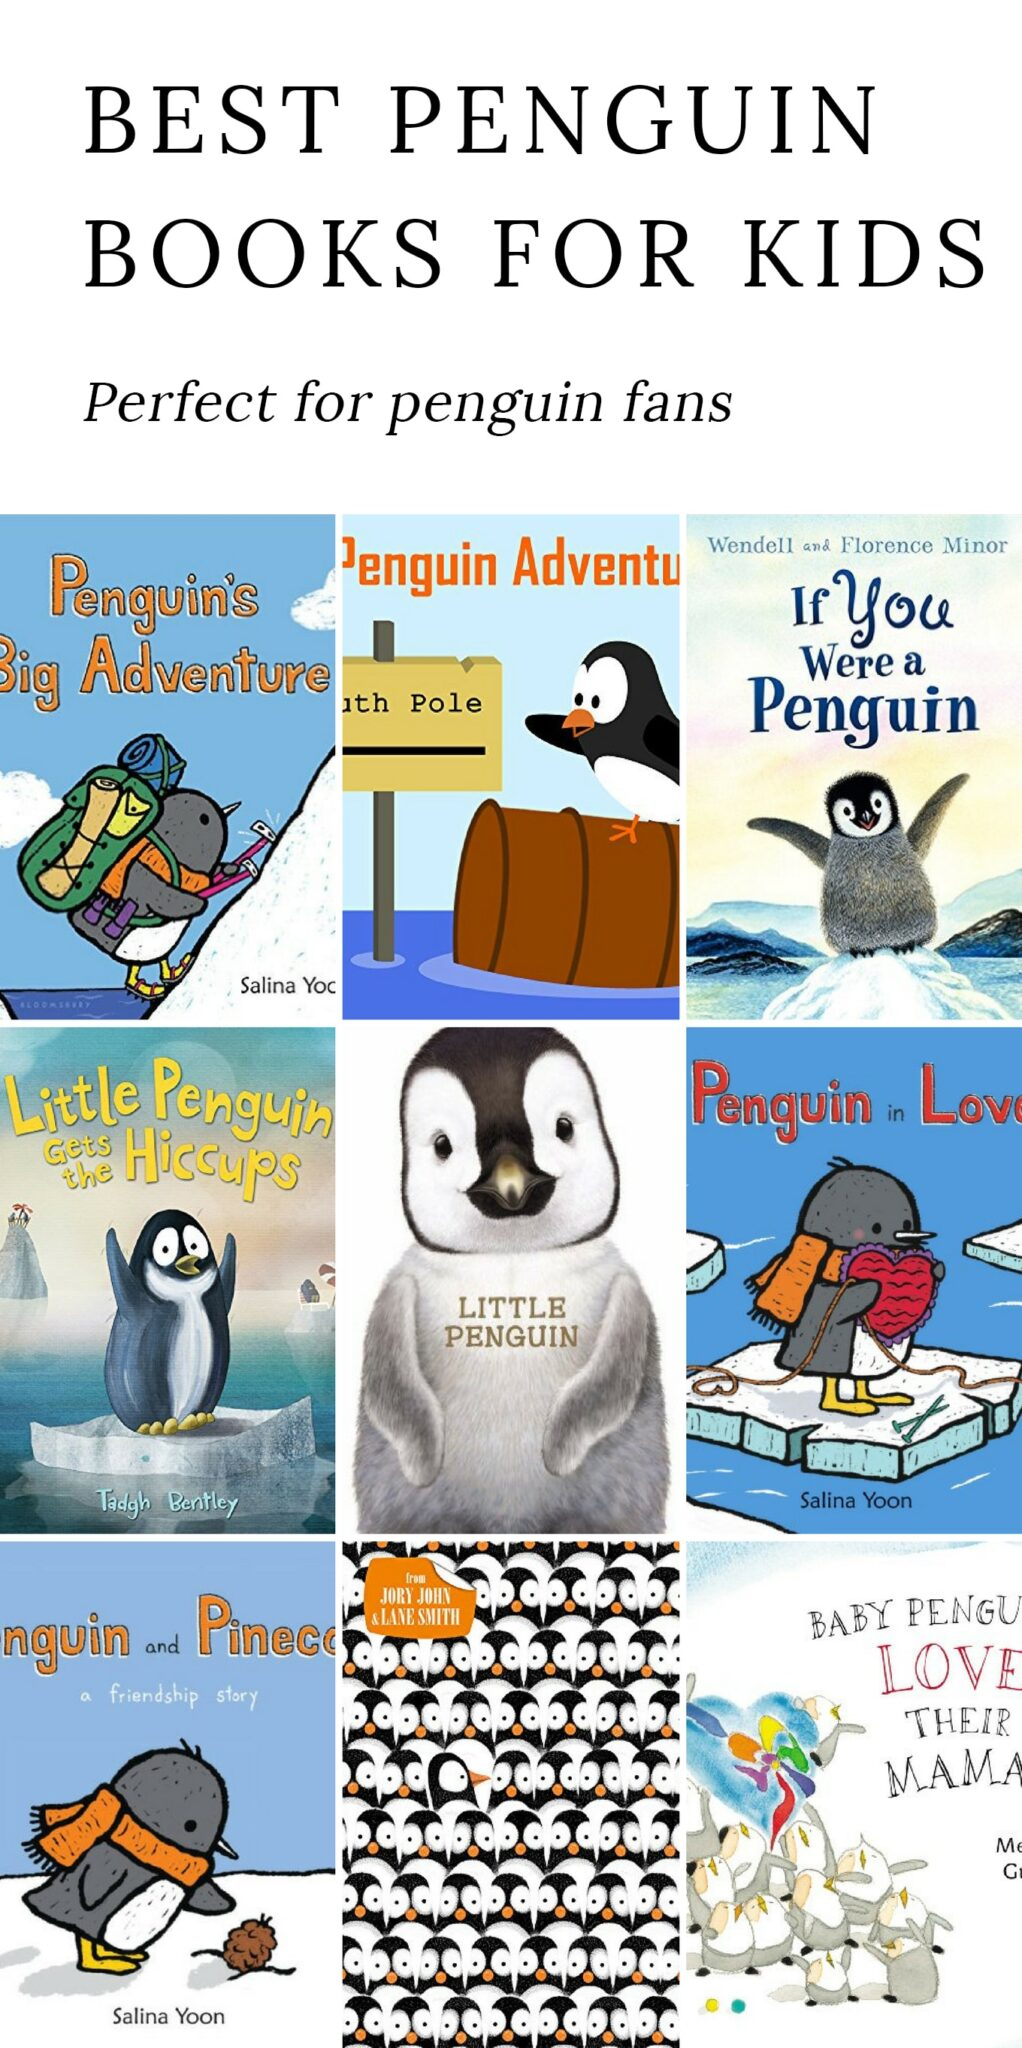 The Best Penguin Books for Kids